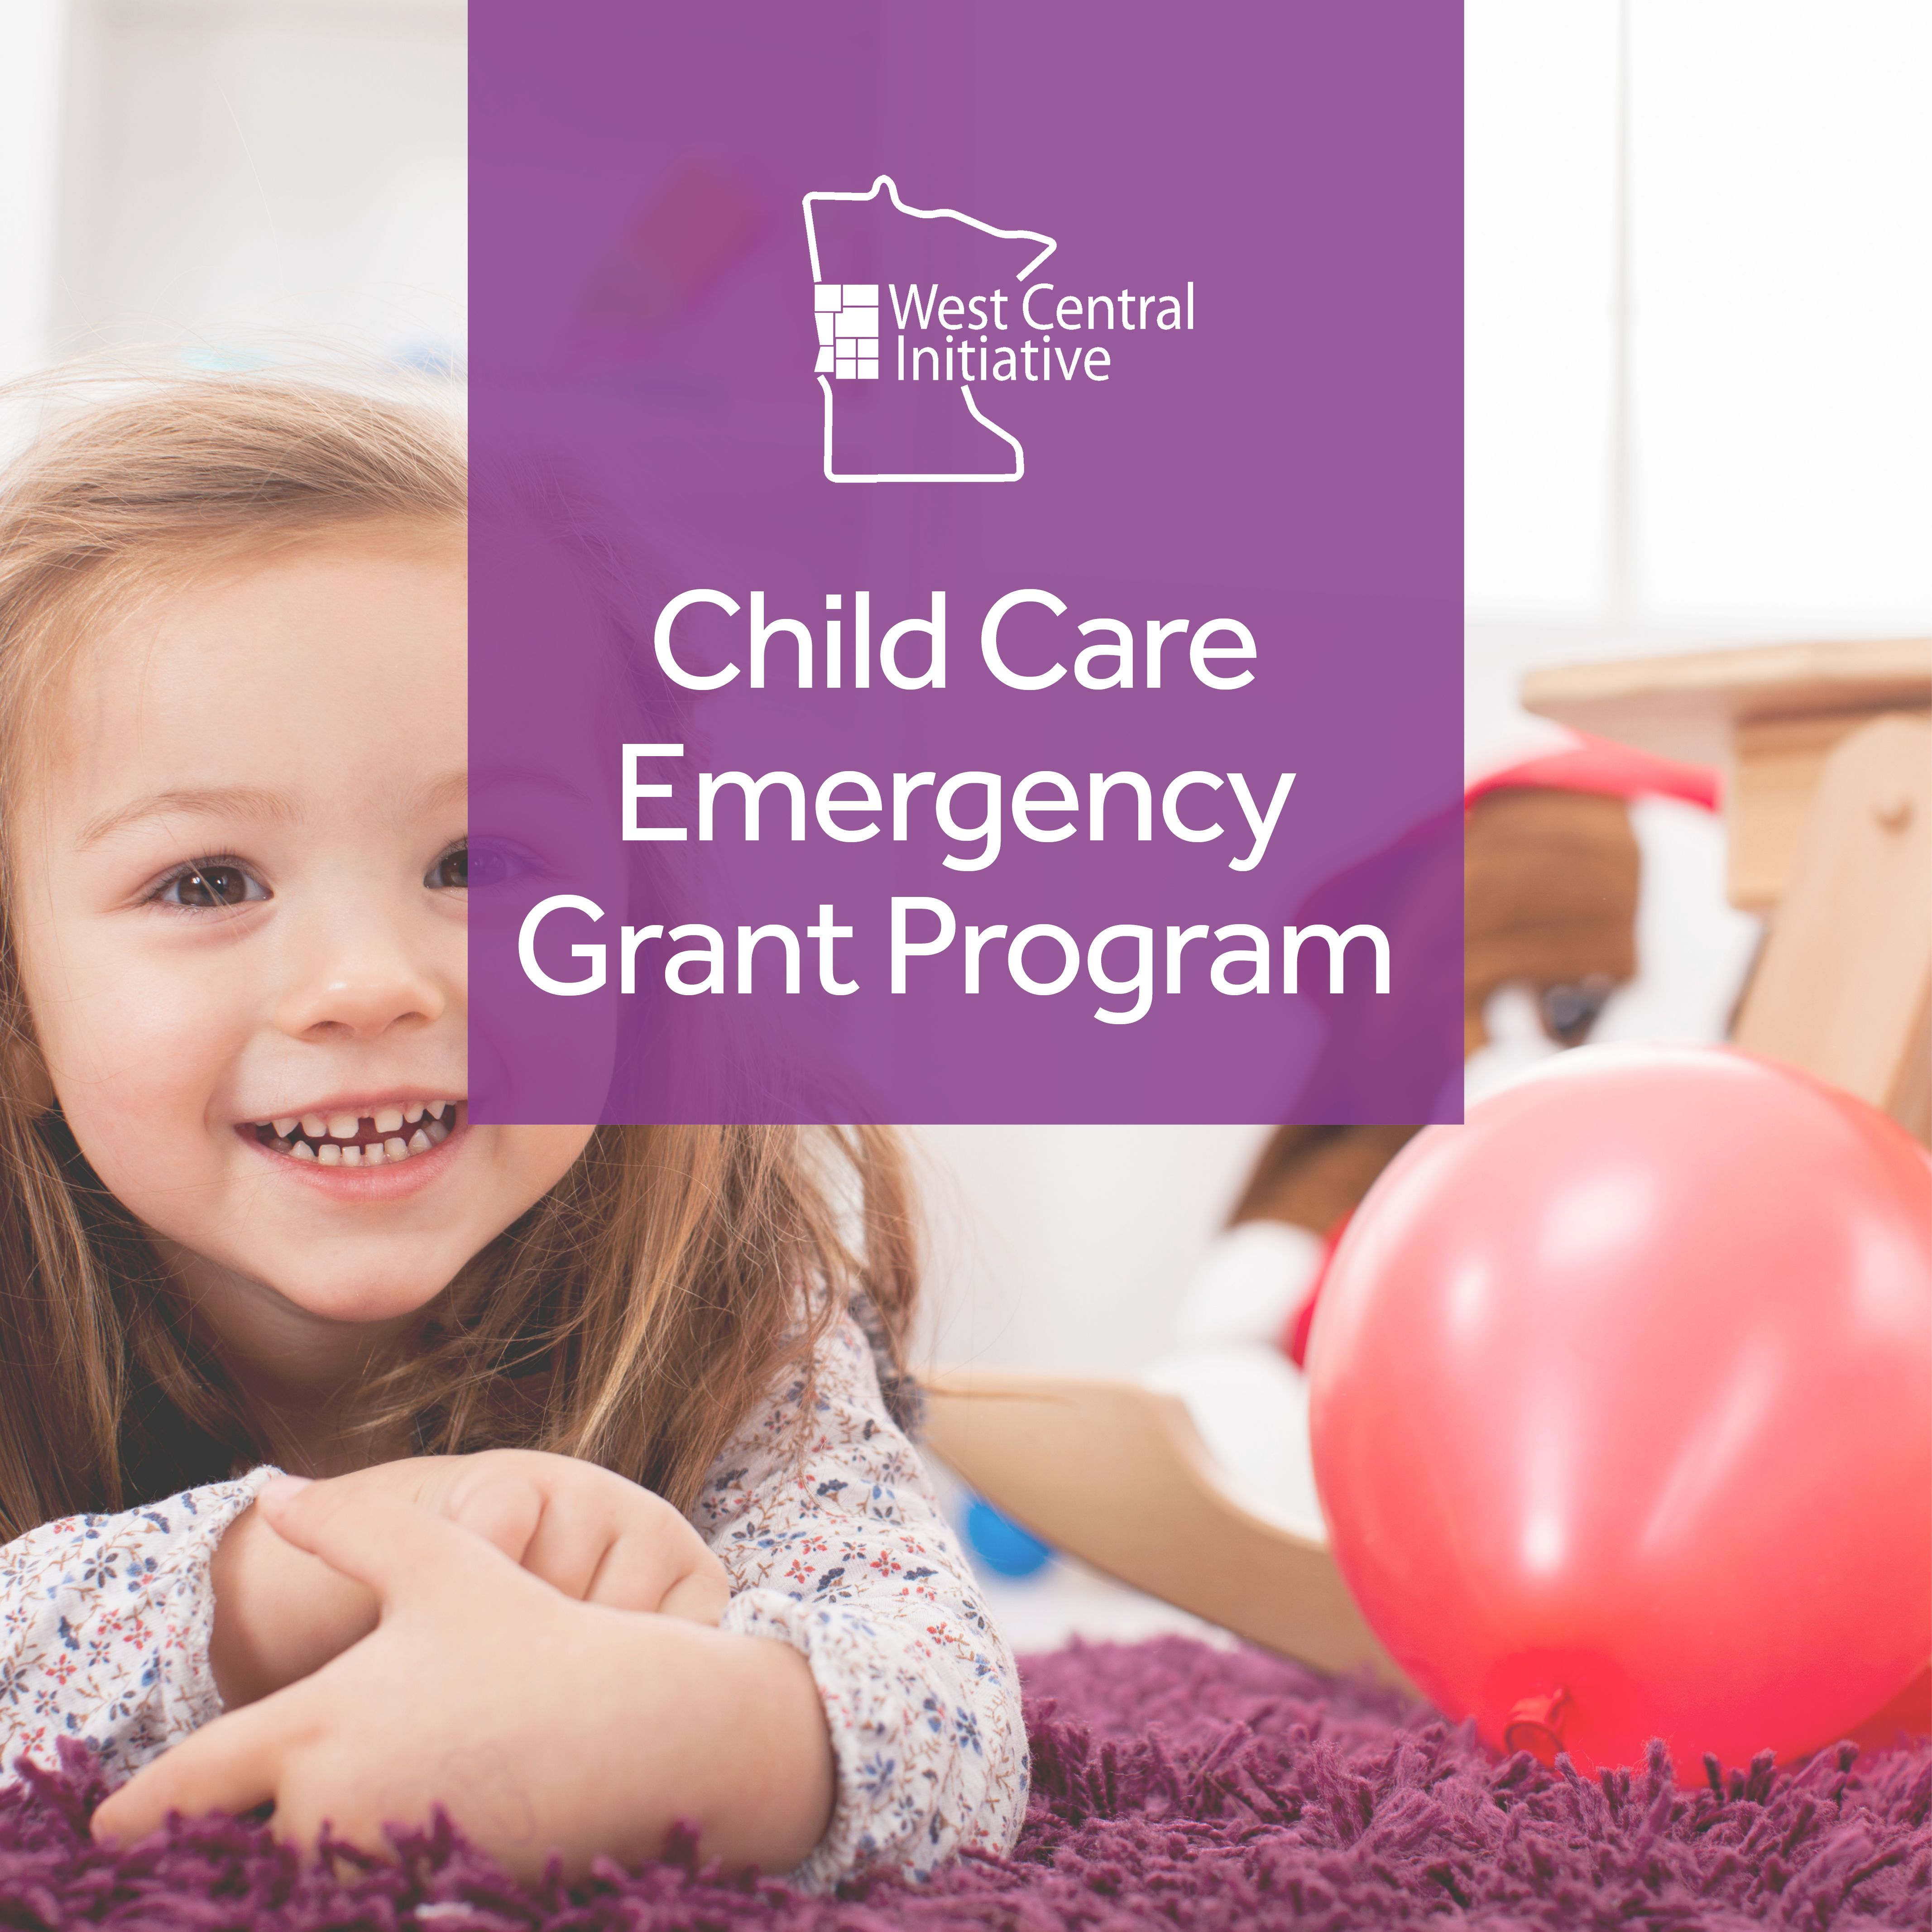 West Central Initiative Launches Emergency Child Care Grant Program for West Central Minnesota